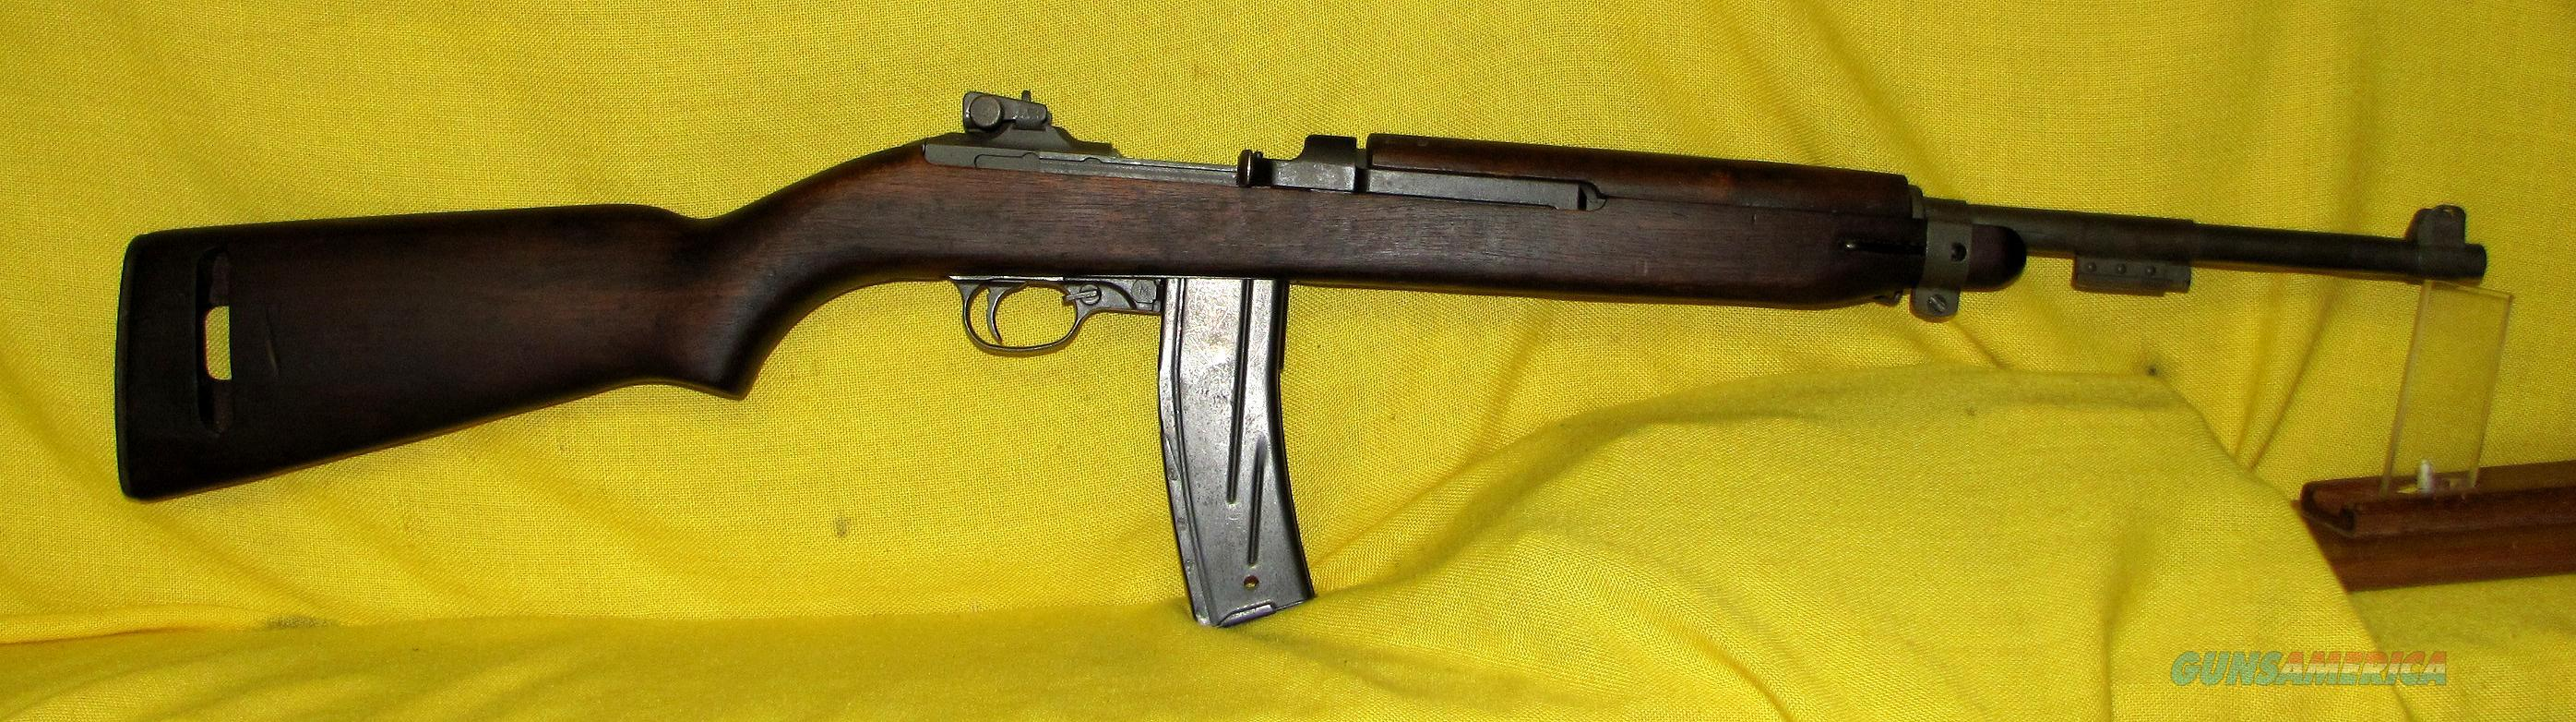 US M1 CARBINE BY INLAND .30 CARBINE 8-44 DATED BBL  Guns > Rifles > Military Misc. Rifles US > M1 Carbine